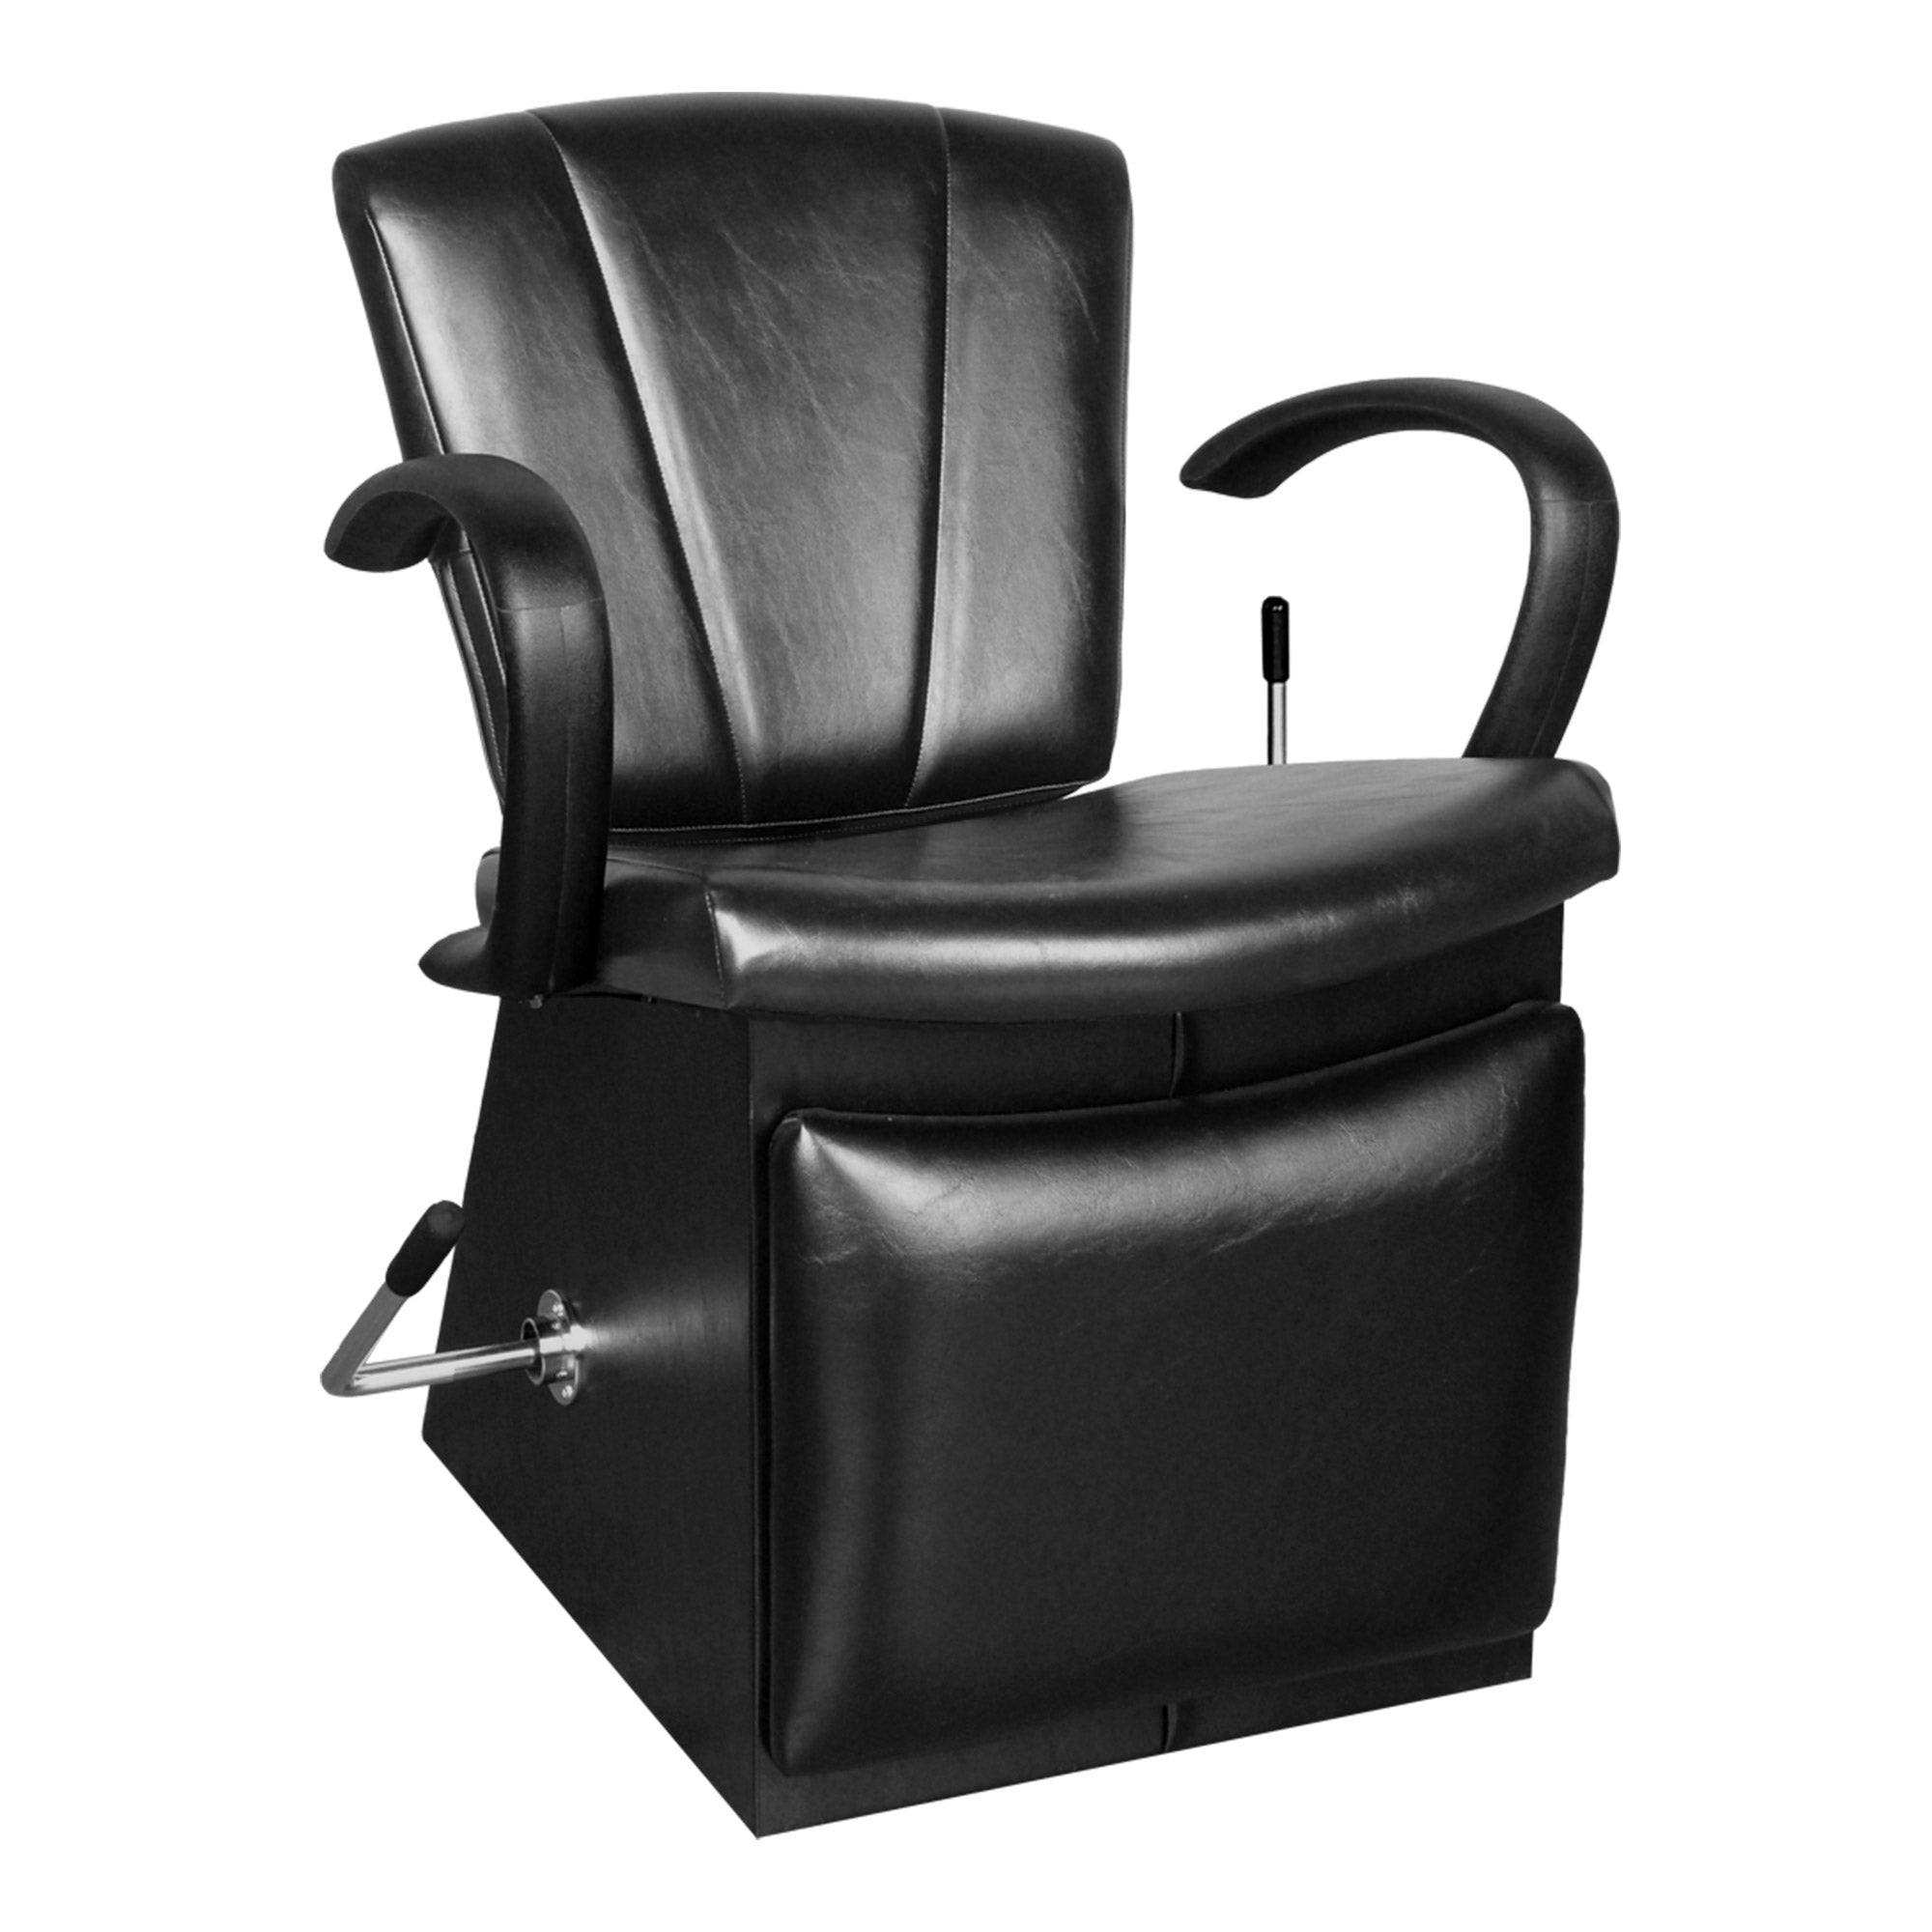 Sean Patrick Shampoo Chair with Legrest - Collins